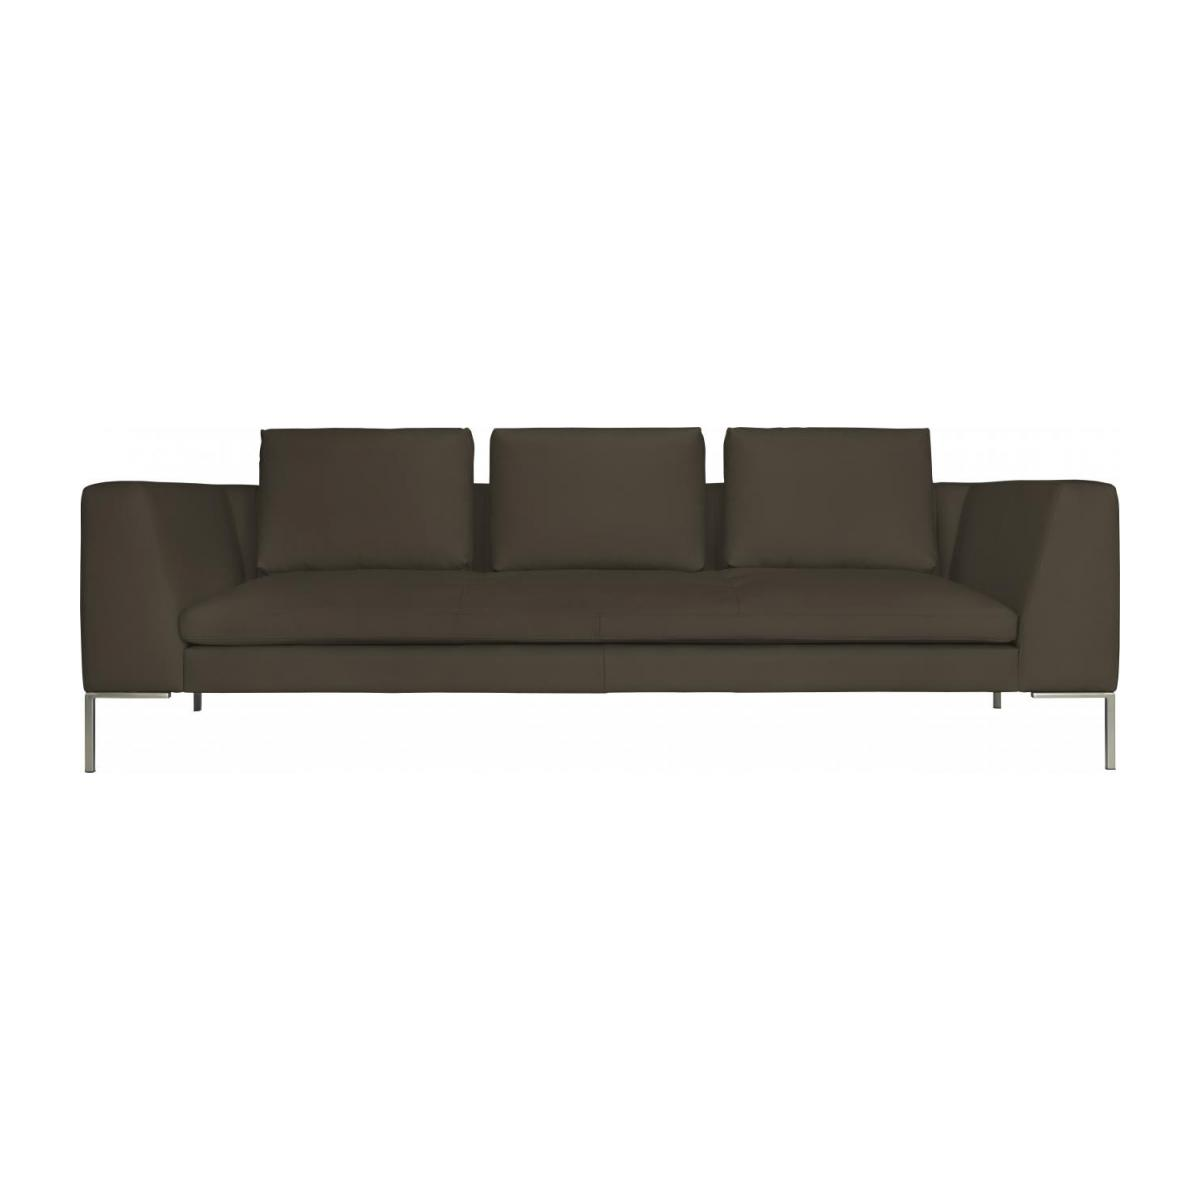 3 seater sofa in Eton veined leather, stone n°3